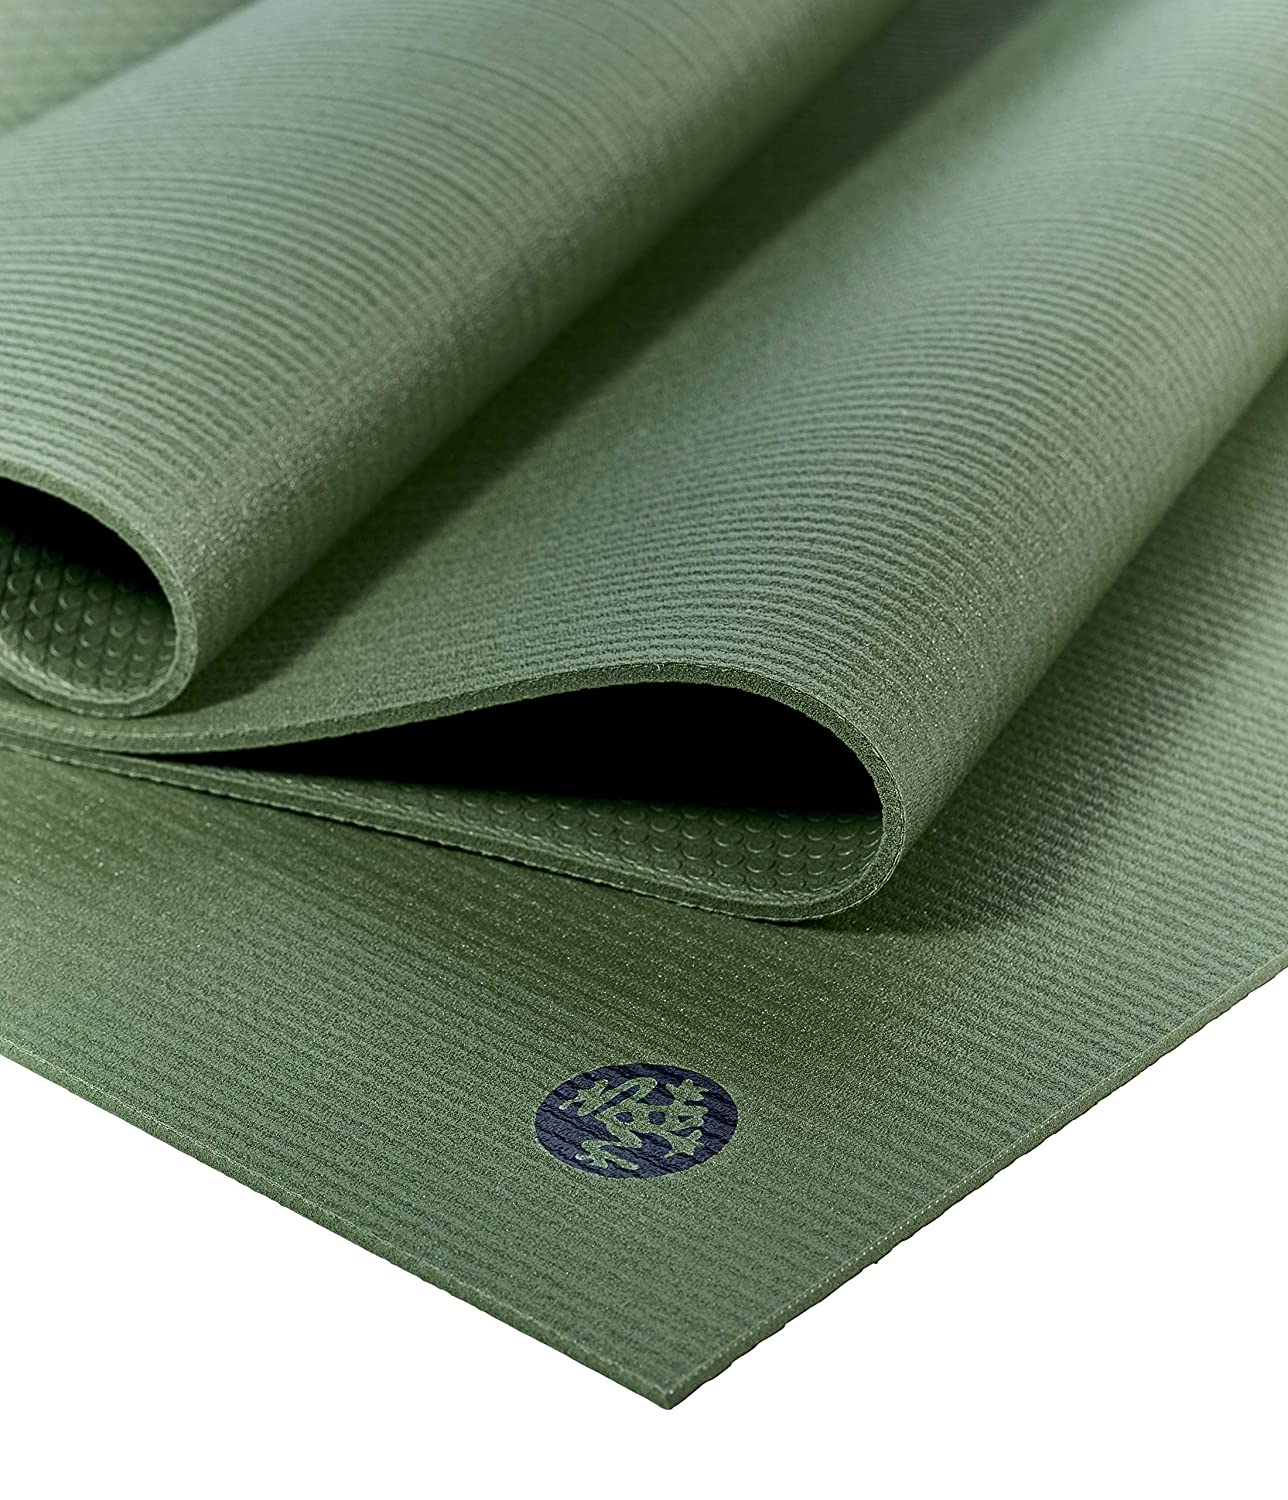 Amazon.com: Manduka ProLite - Esterillas de yoga y pilates ...